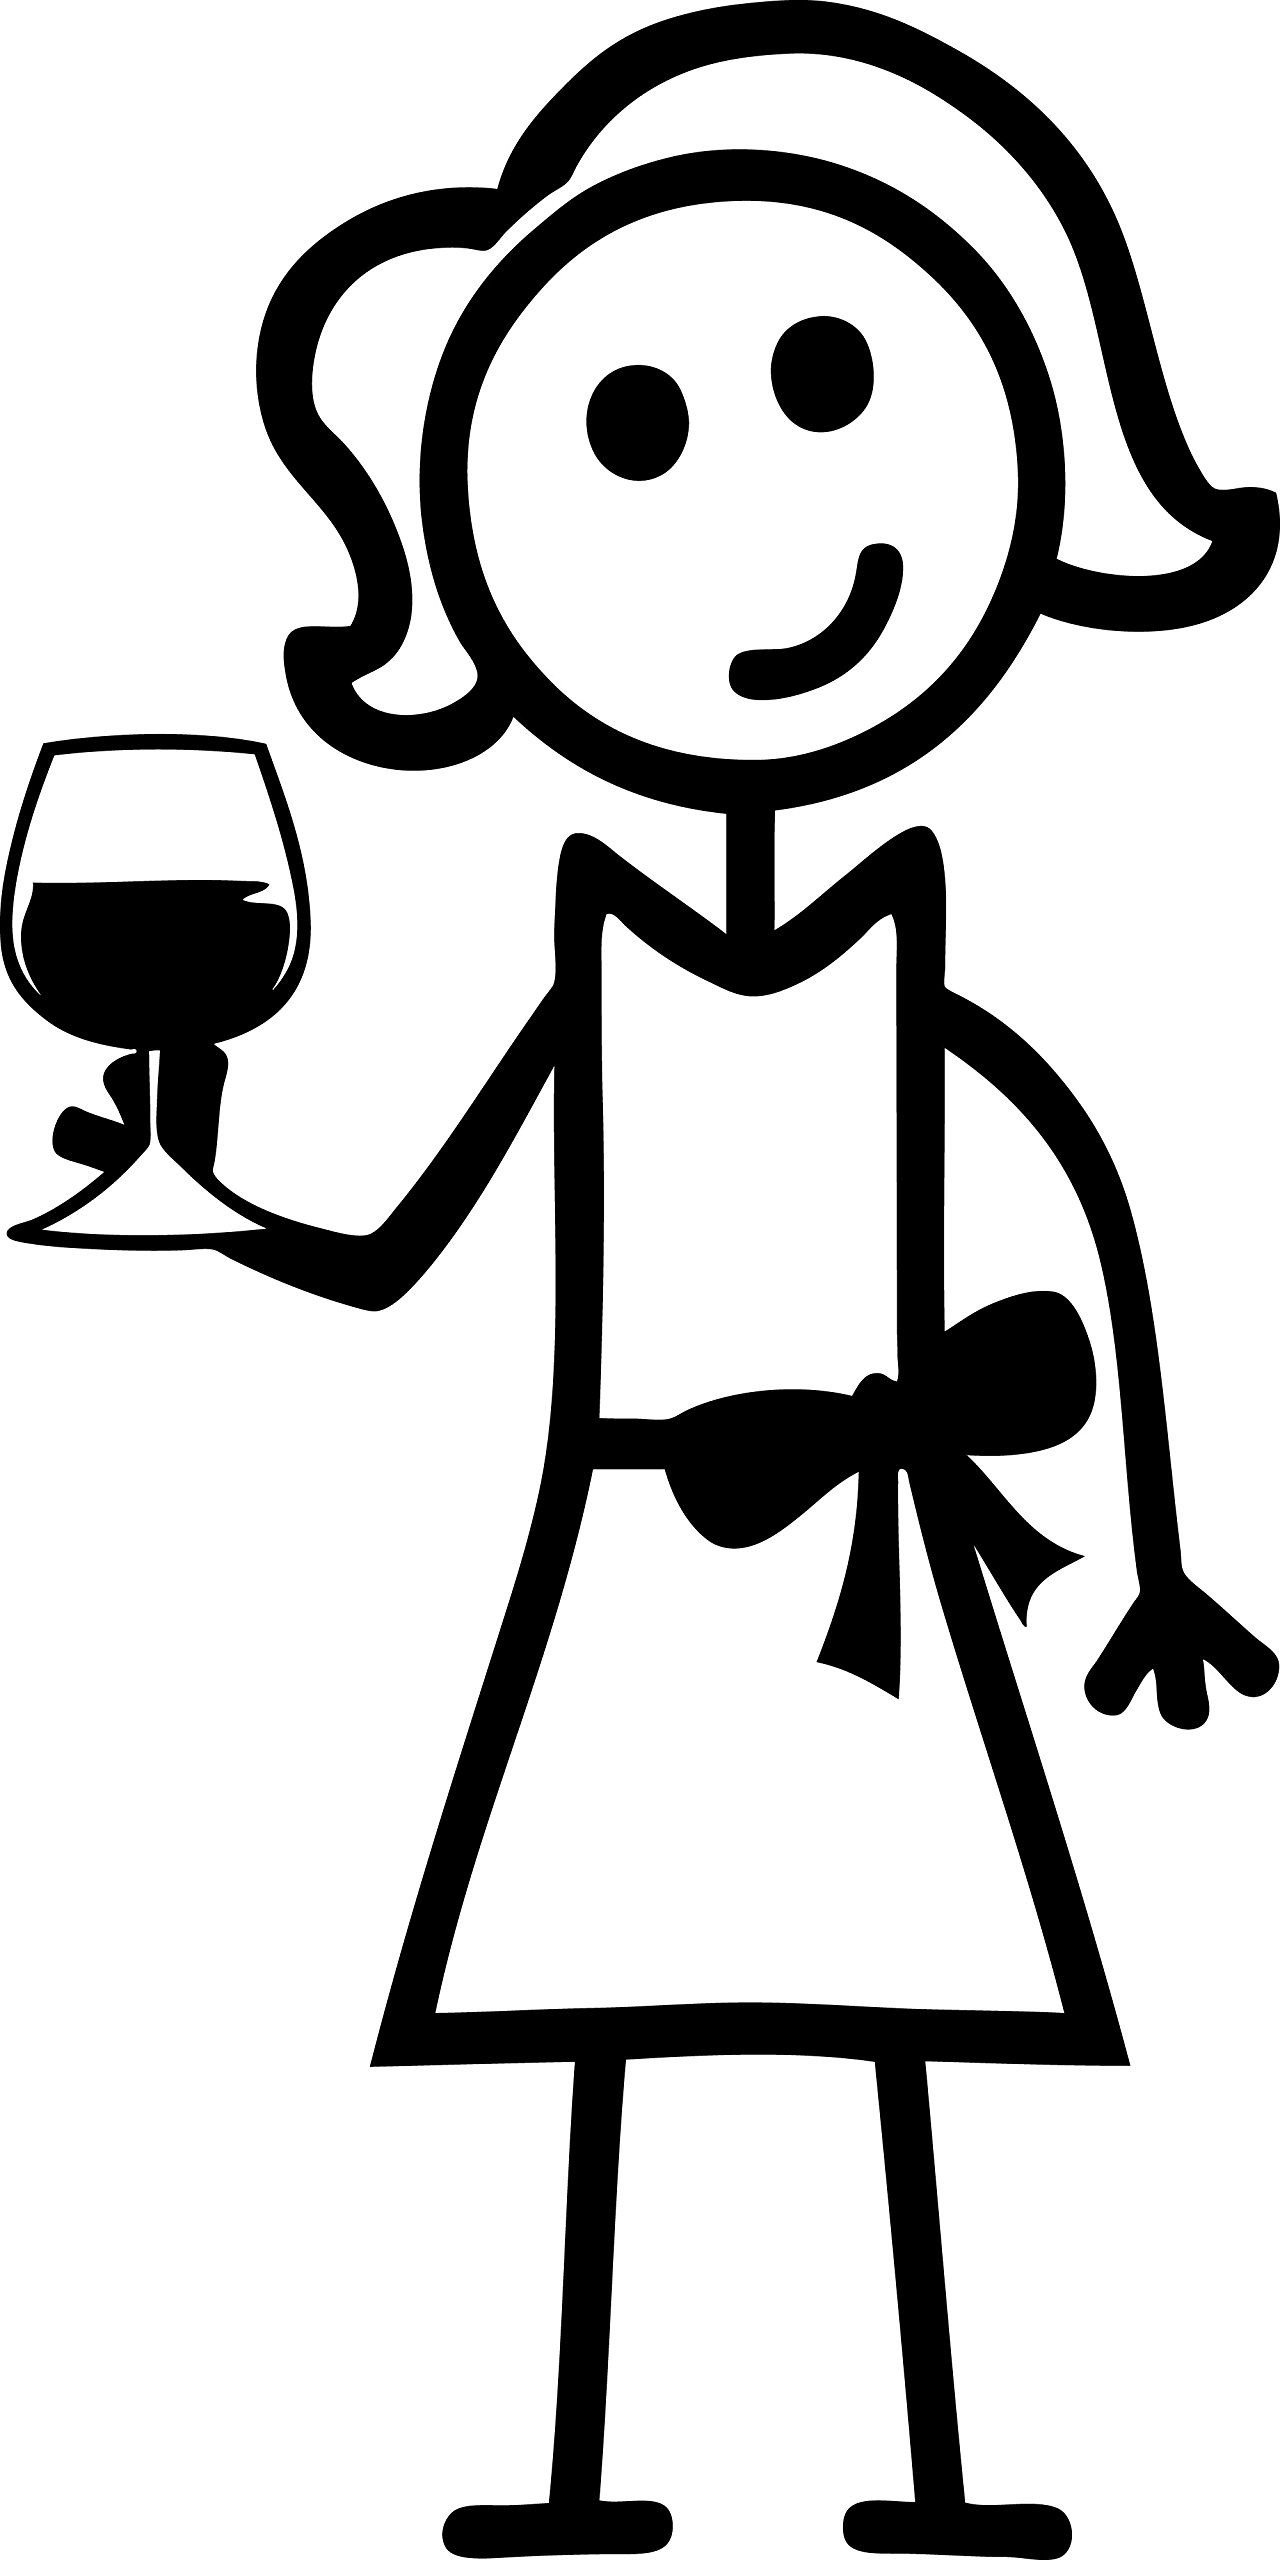 Woman holding wine glass clipart svg library download Amazon.com: STICK FAMILY LADY HOLDING WINE GLASS STICKER 5 ... svg library download